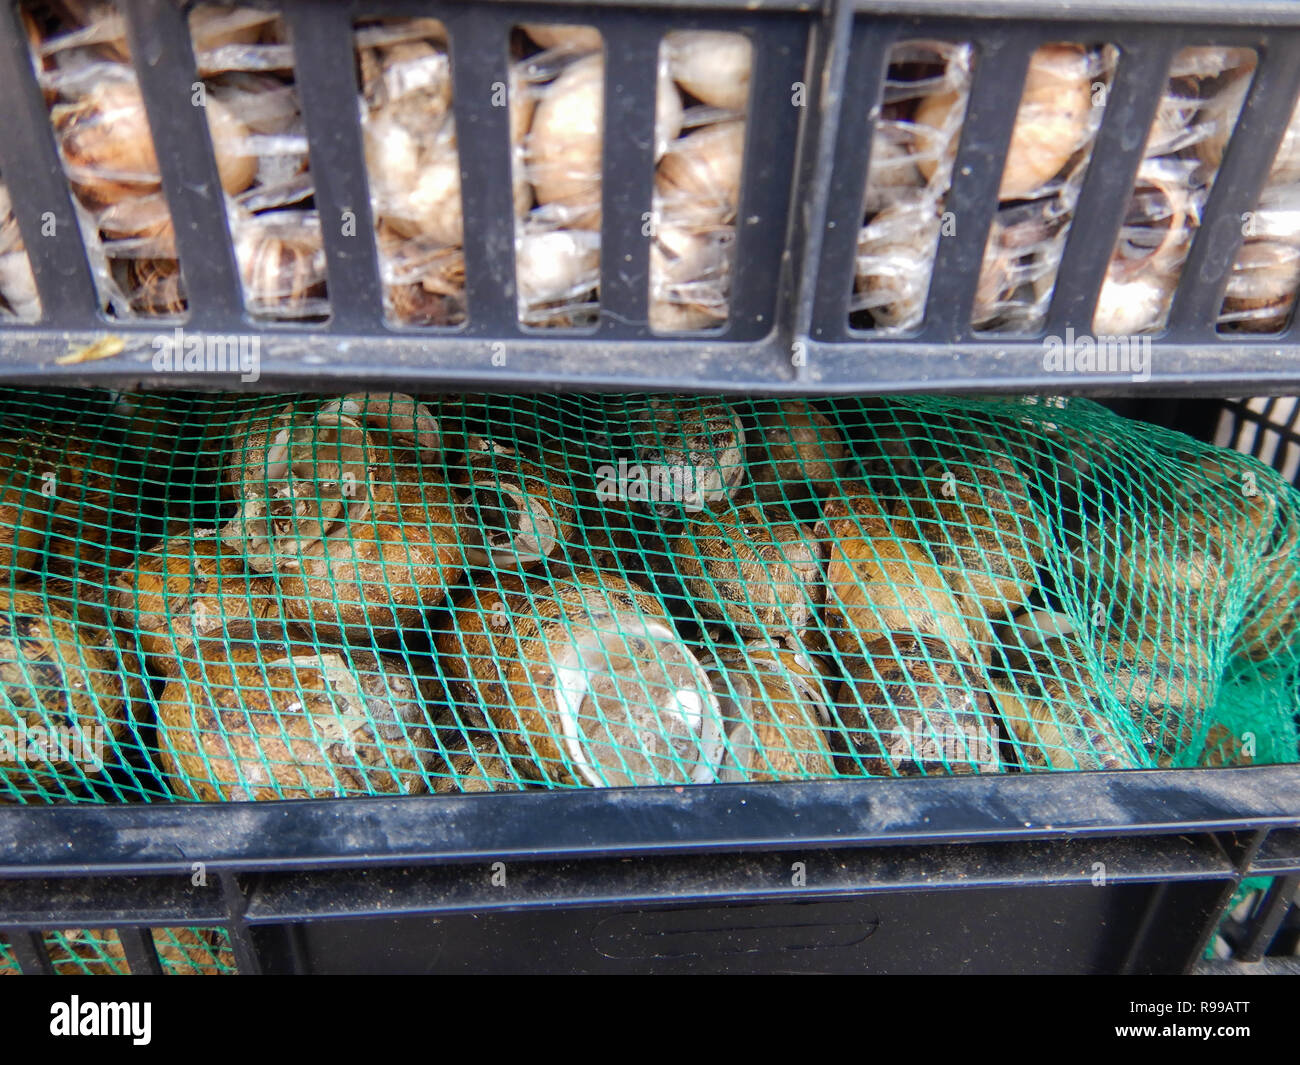 Snails in plastic boxes ready for sale - Stock Image